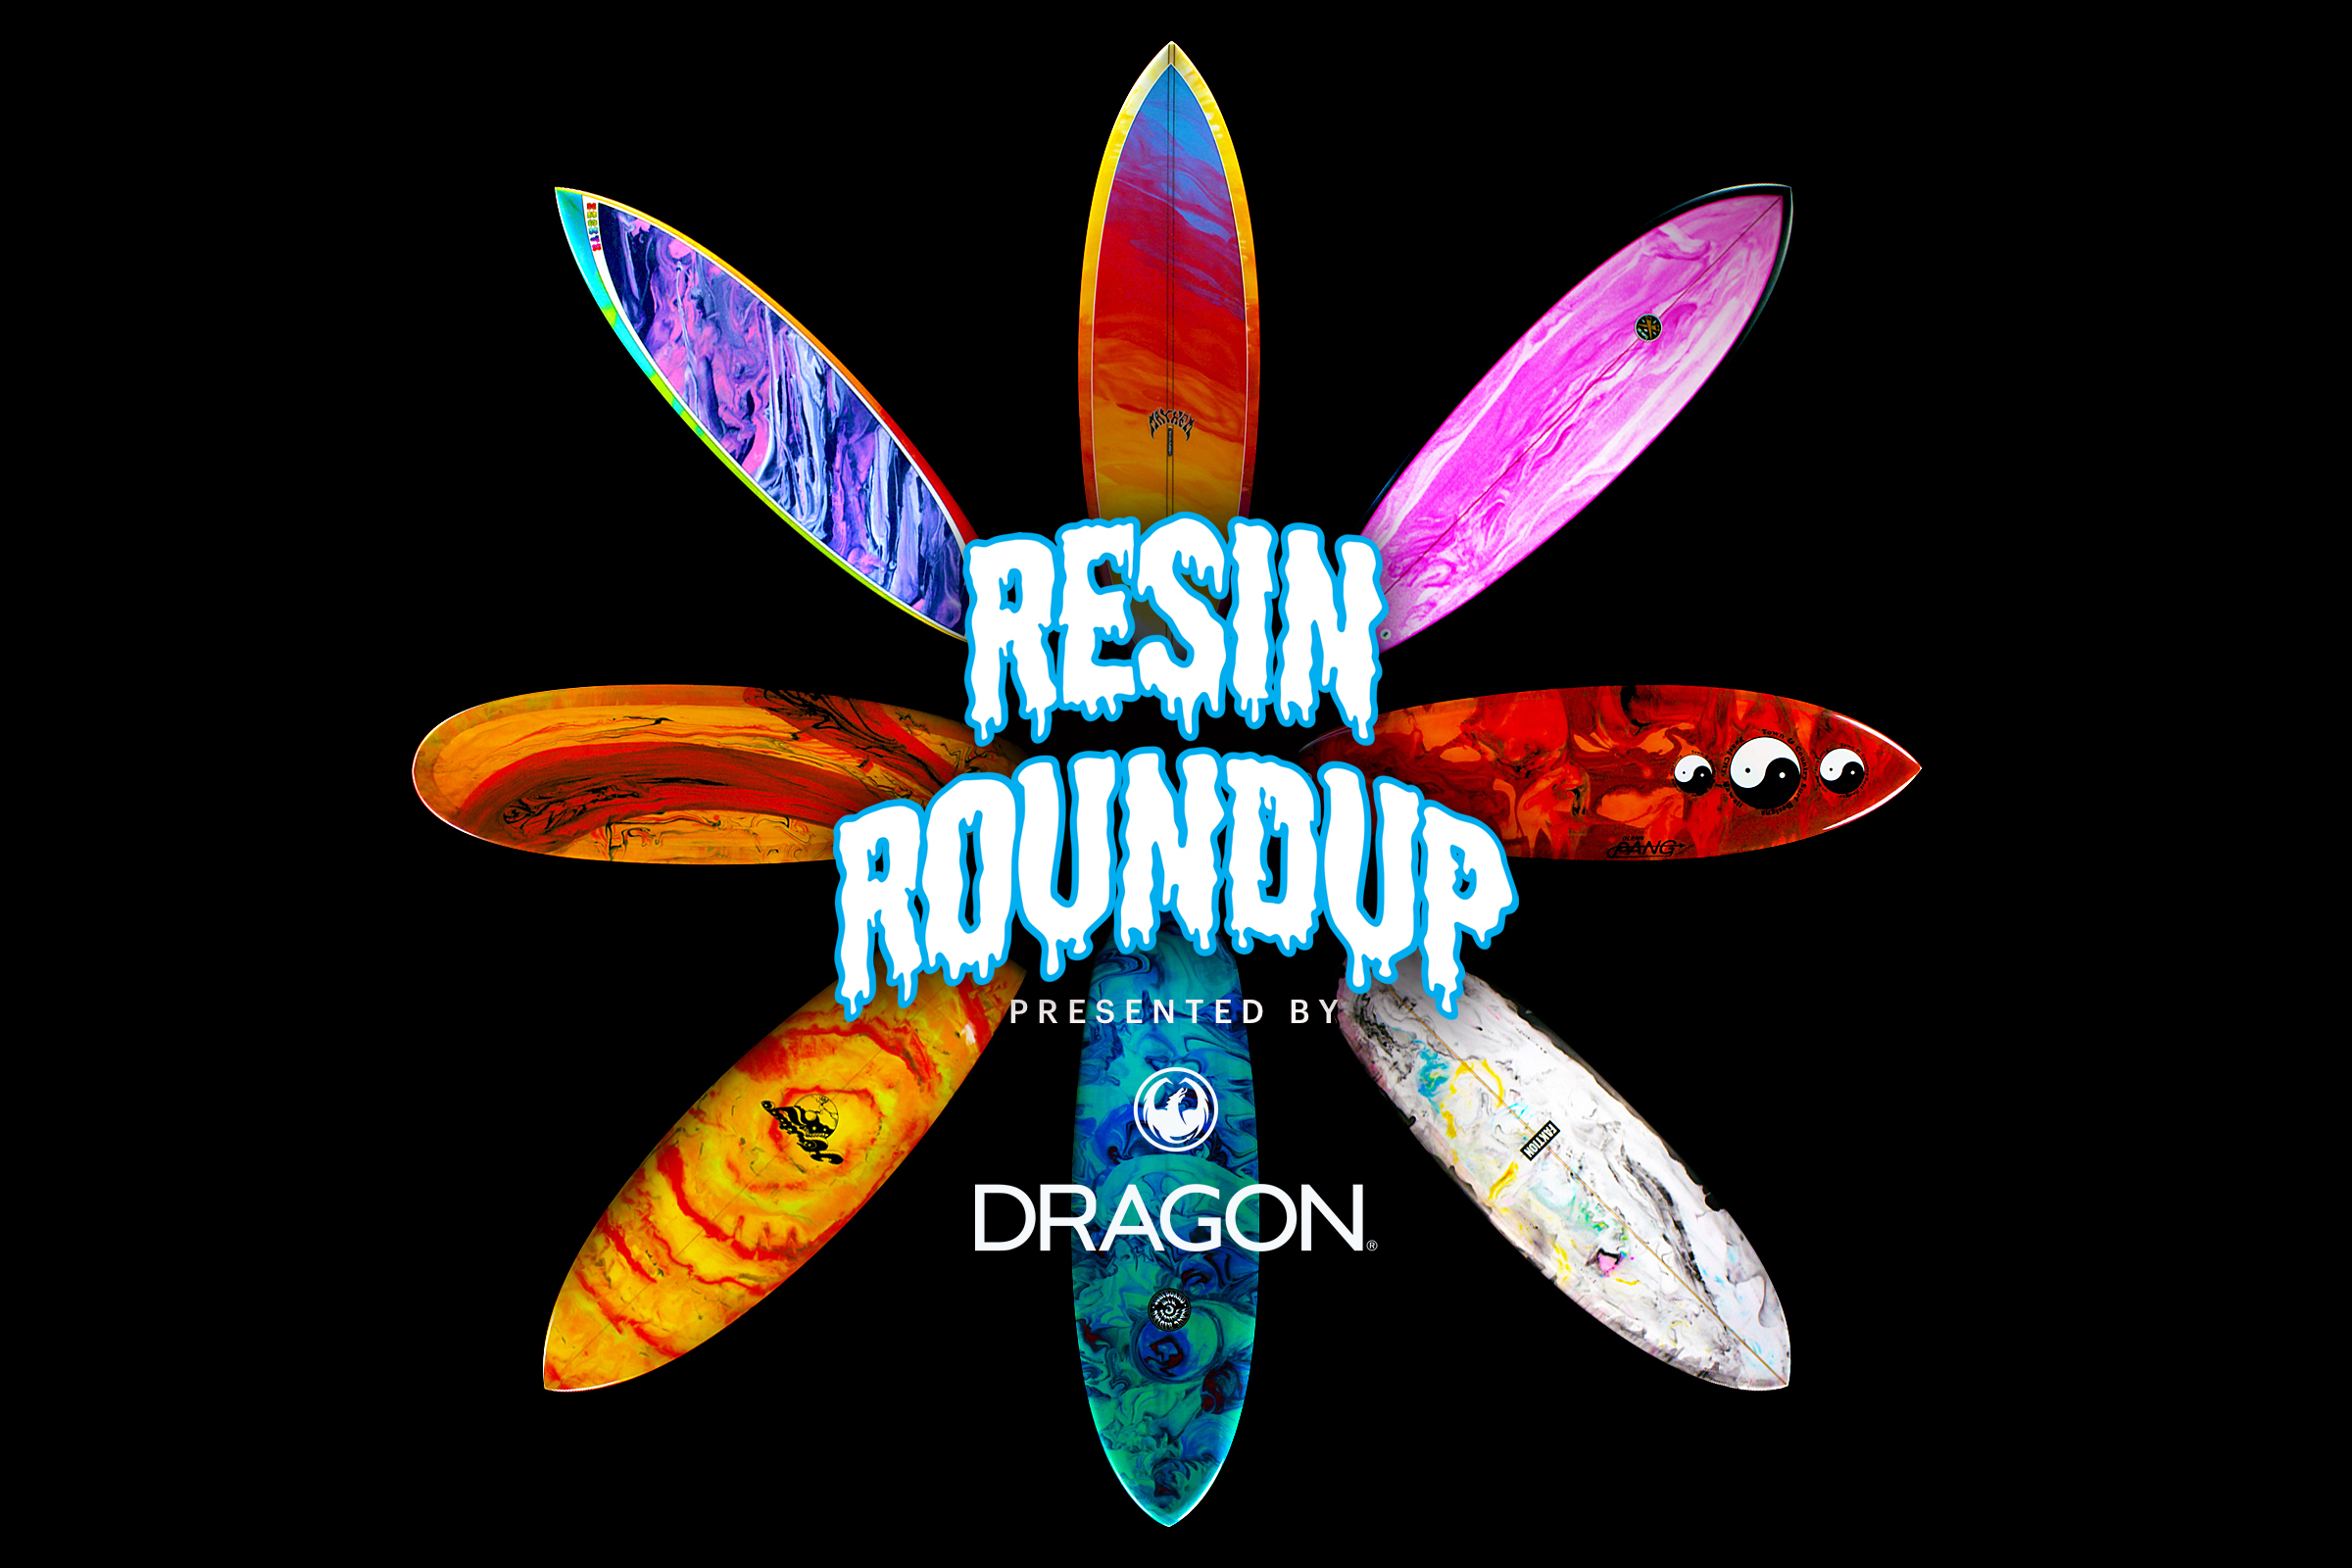 Want to Buy One of the Gorgeous Resin Roundup Boards?